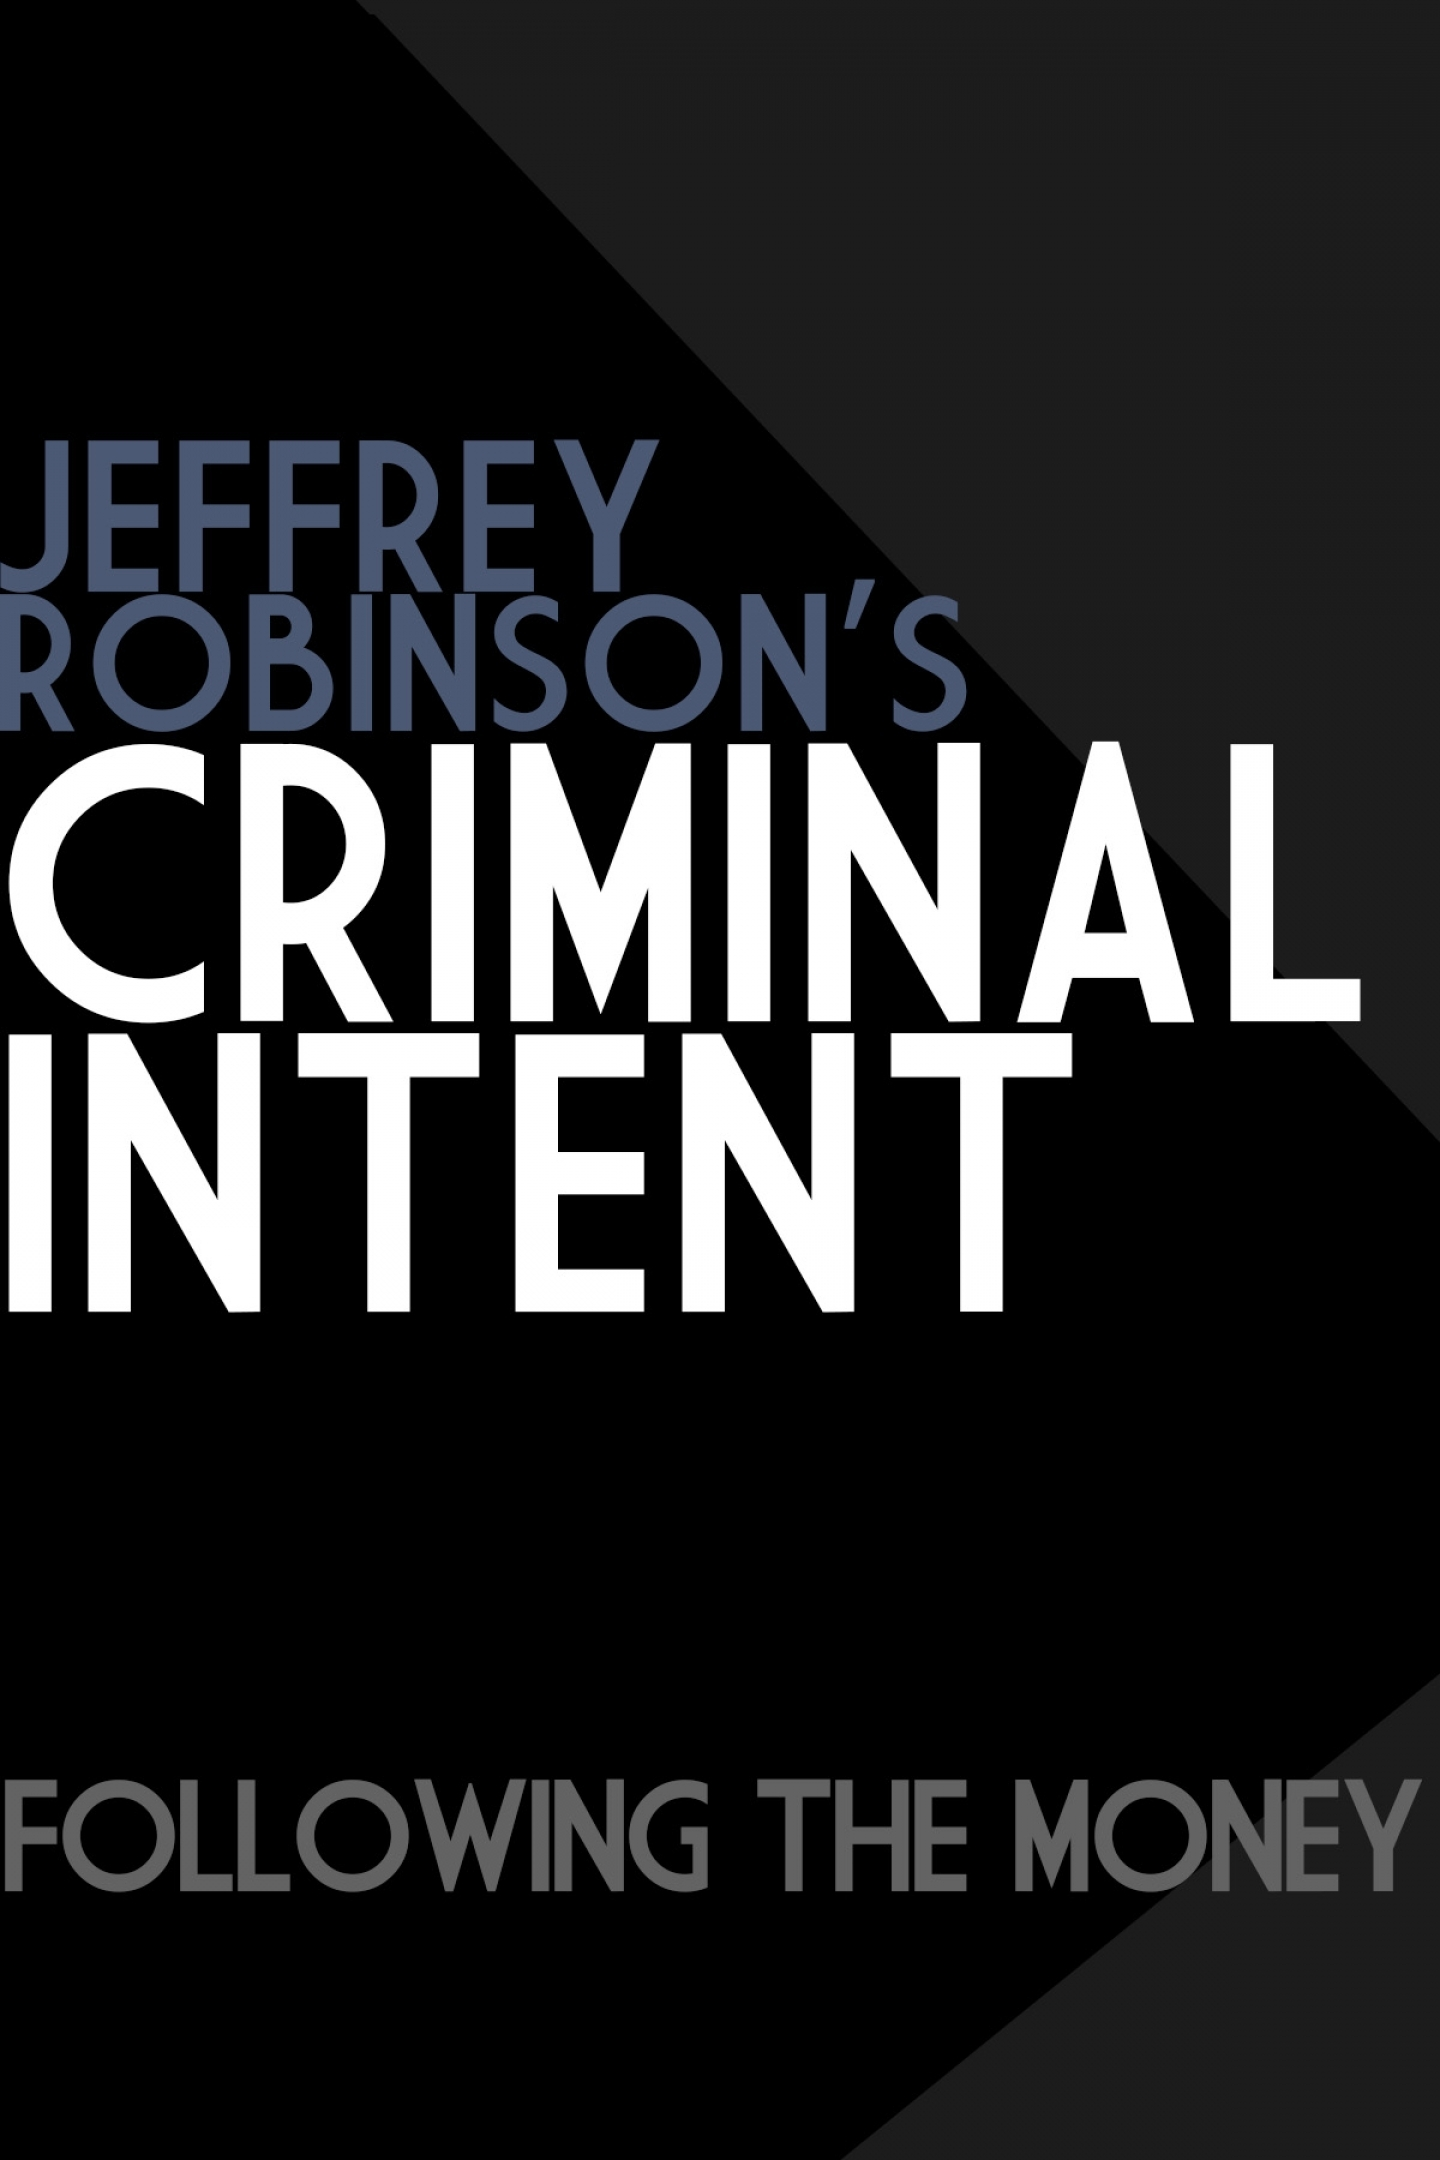 Jeffrey Robinson's Criminal Intent-Following The Money